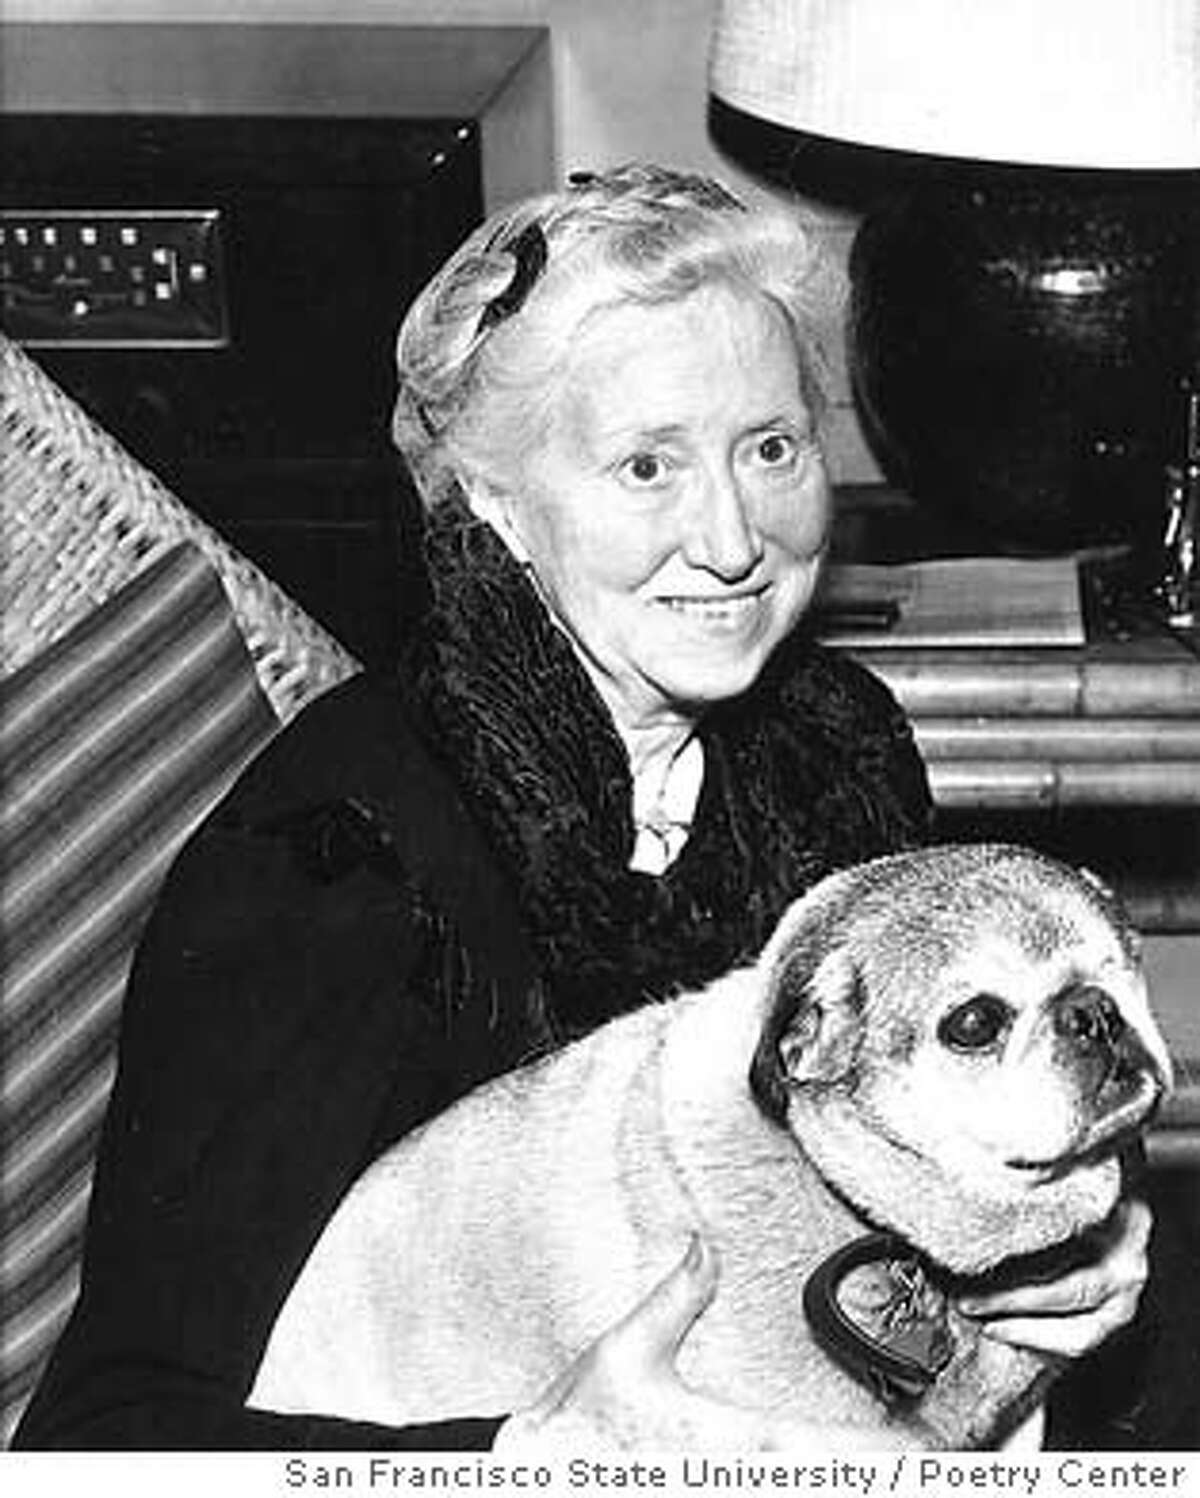 Marianne Mooer and canine, at the home of Poetry Center founding director Rith Witt-Diamant in 1957.